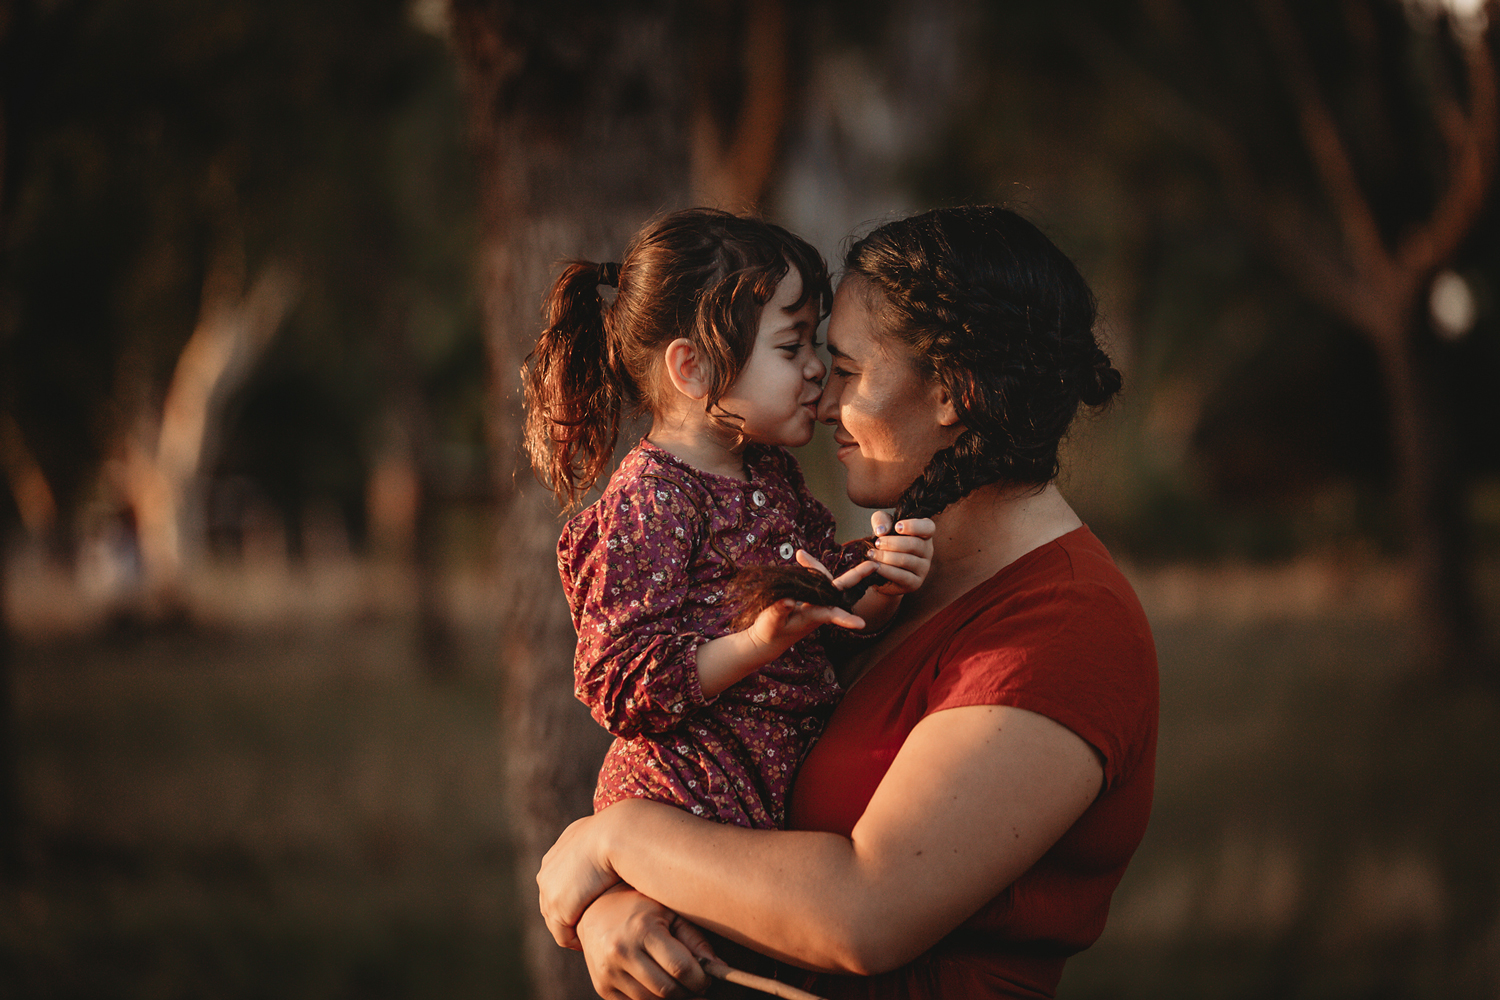 kissing-mummy's-nose-cathy-britton-photography.jpg